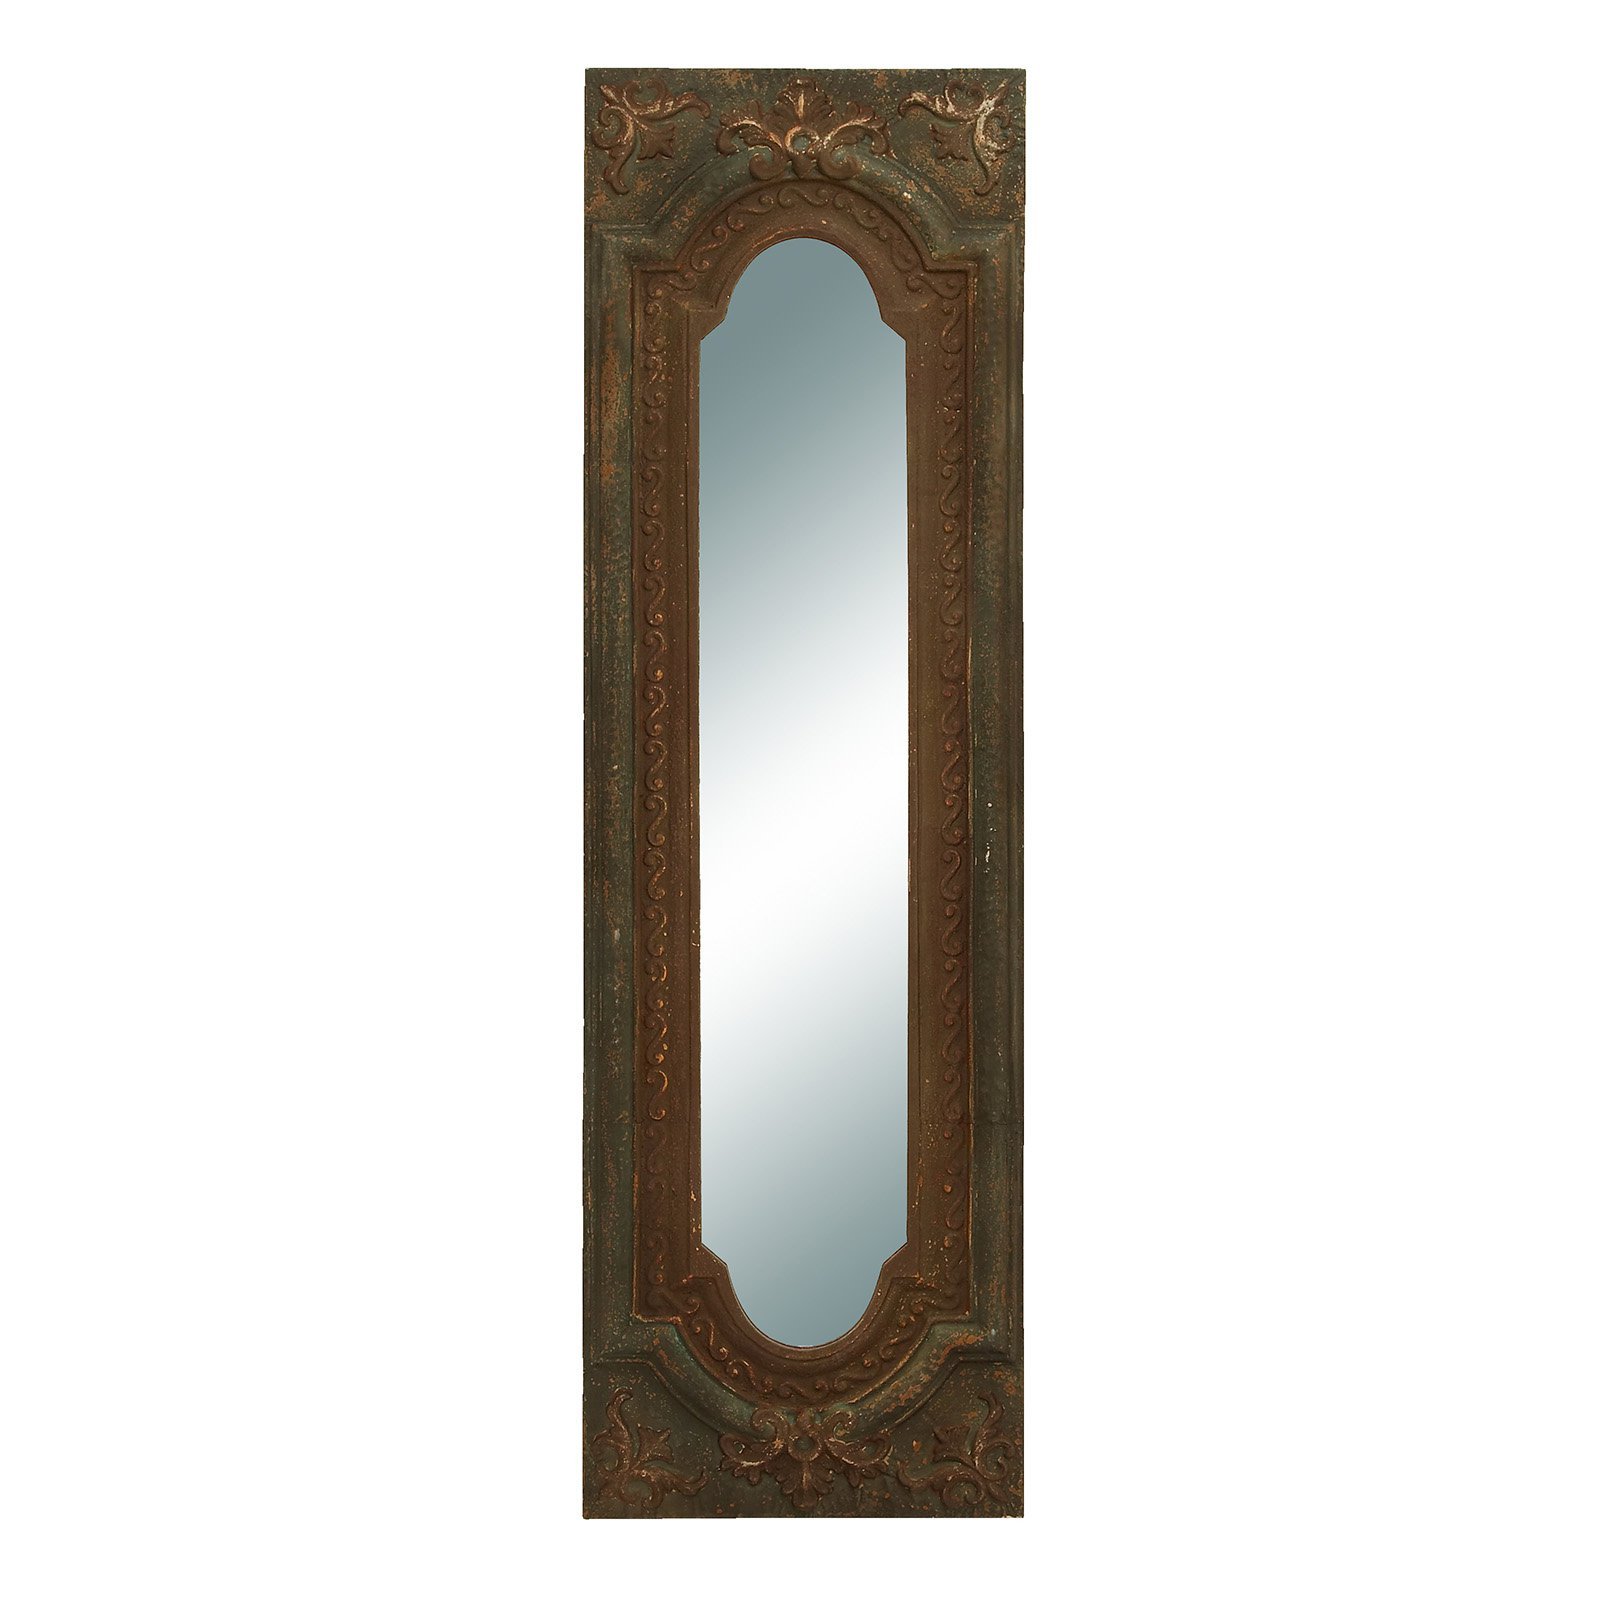 Benzara Elegant Floor Mirror 19W x 64H in. by DecMode